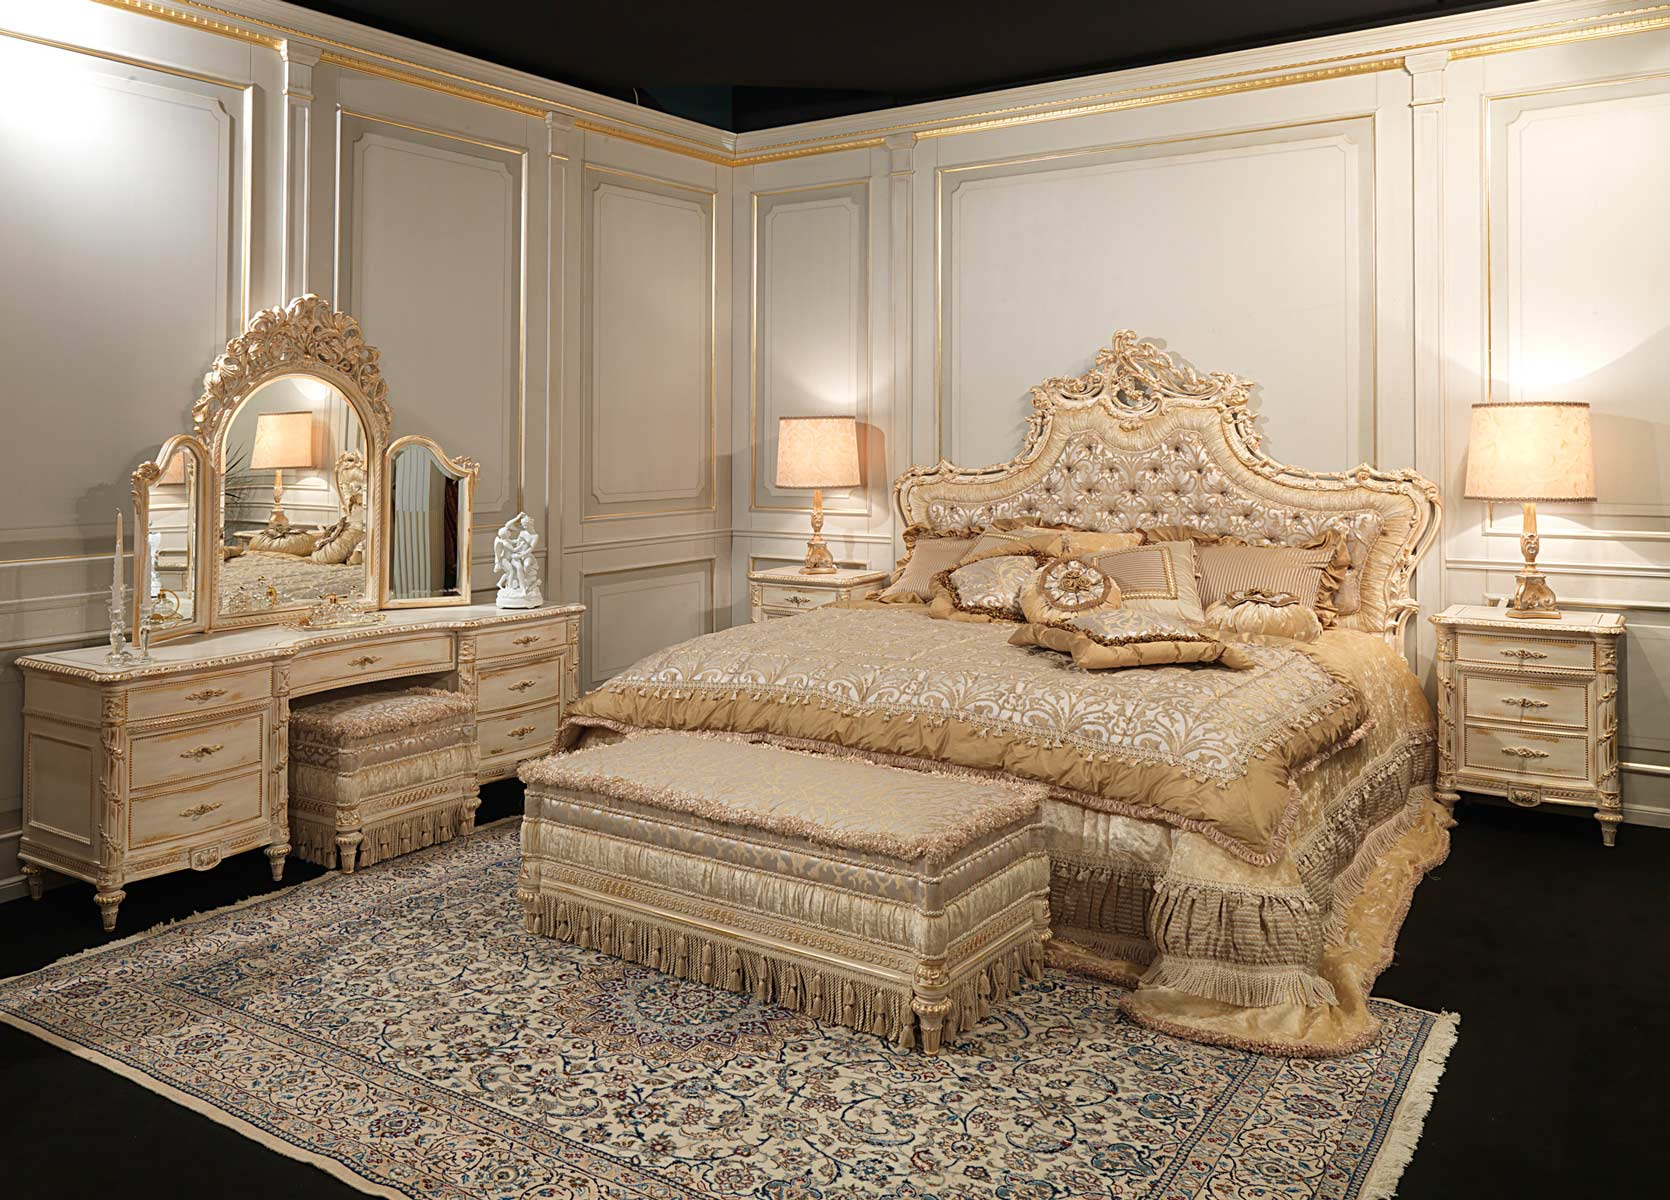 Feminine Bedroom Decorating Ideas Classic Louis Xvi Bedroom Capitonn 232 Headboard With Rich